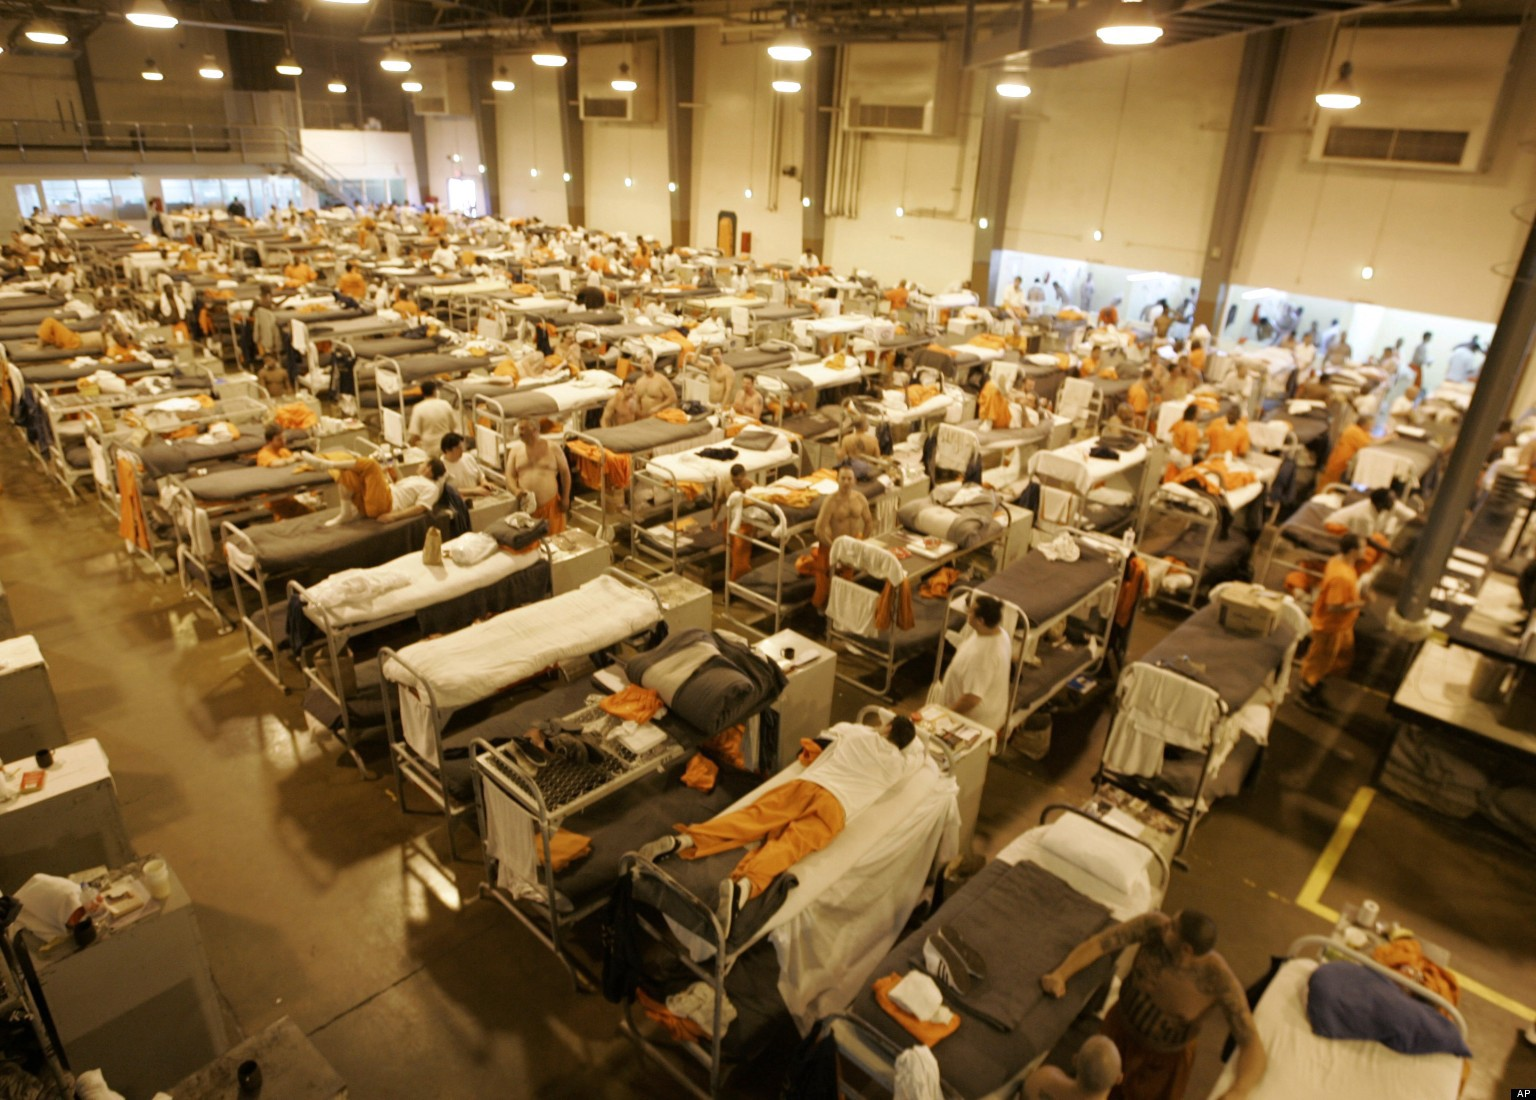 the issue of overcrowding prisons in the united states The overcrowding issues topic provides news, columns, and expert opinion on the dangerous issue of prison overcrowding from legislation intended to combat the issue to how corrections staff can.